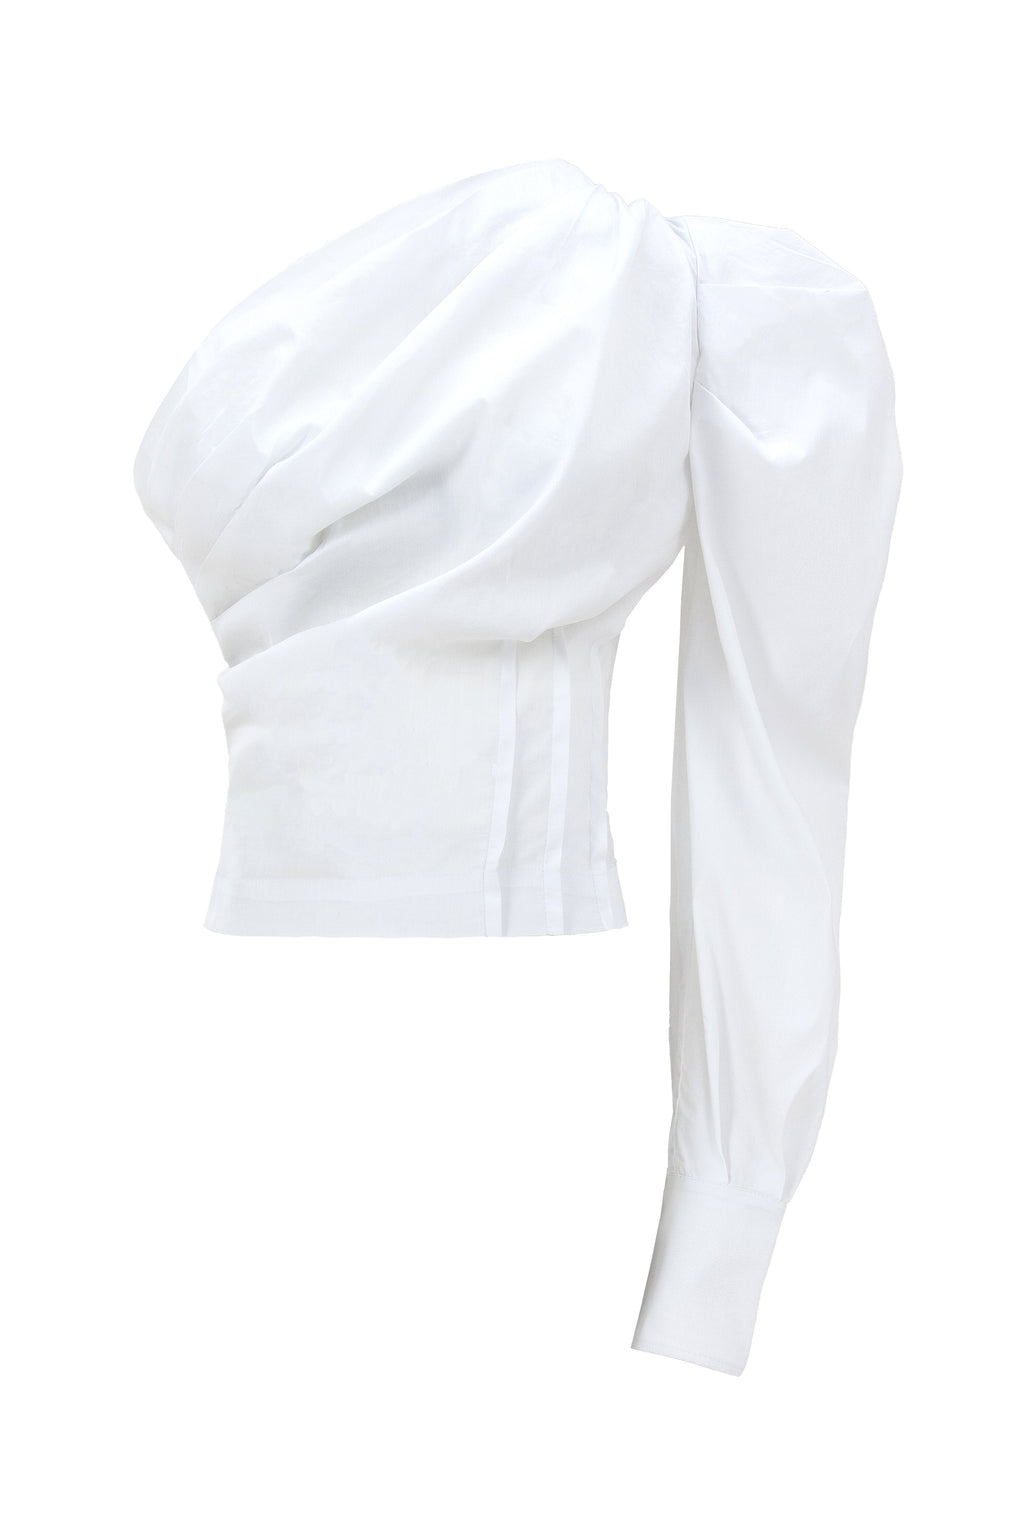 Double Identity One-Shoulder White Cotton Shirt - Tia Dorraine London